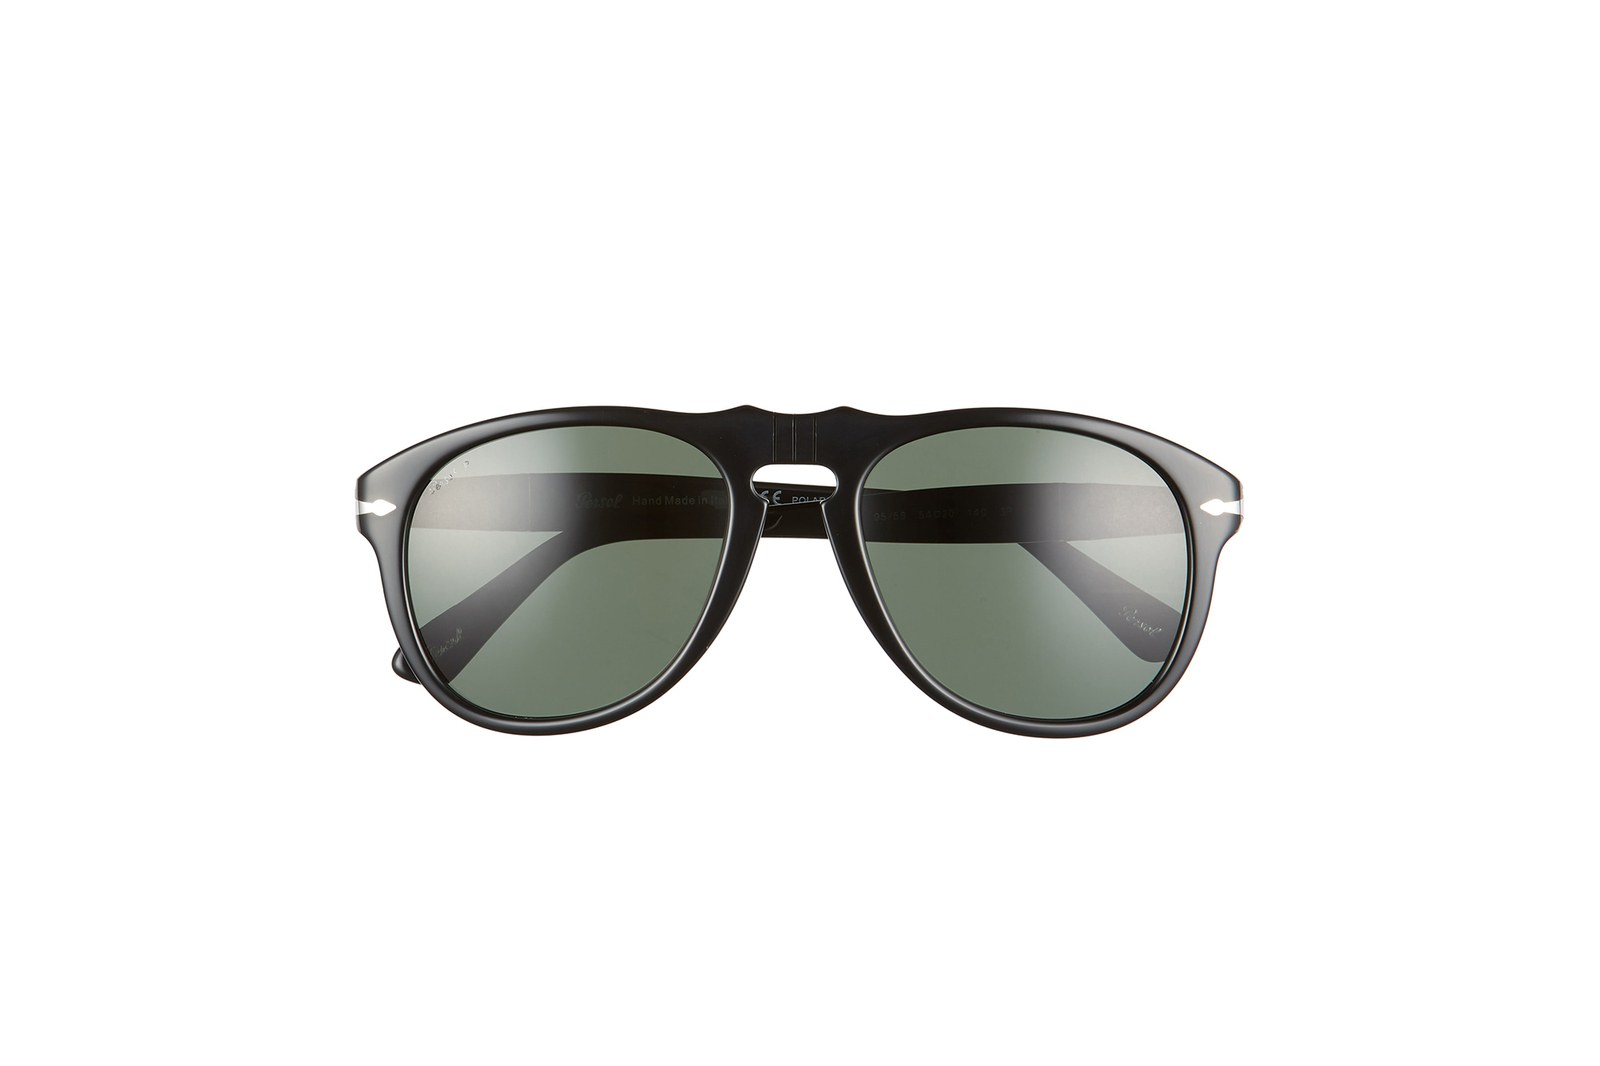 Kính Persol Suprema polarized sunglasses